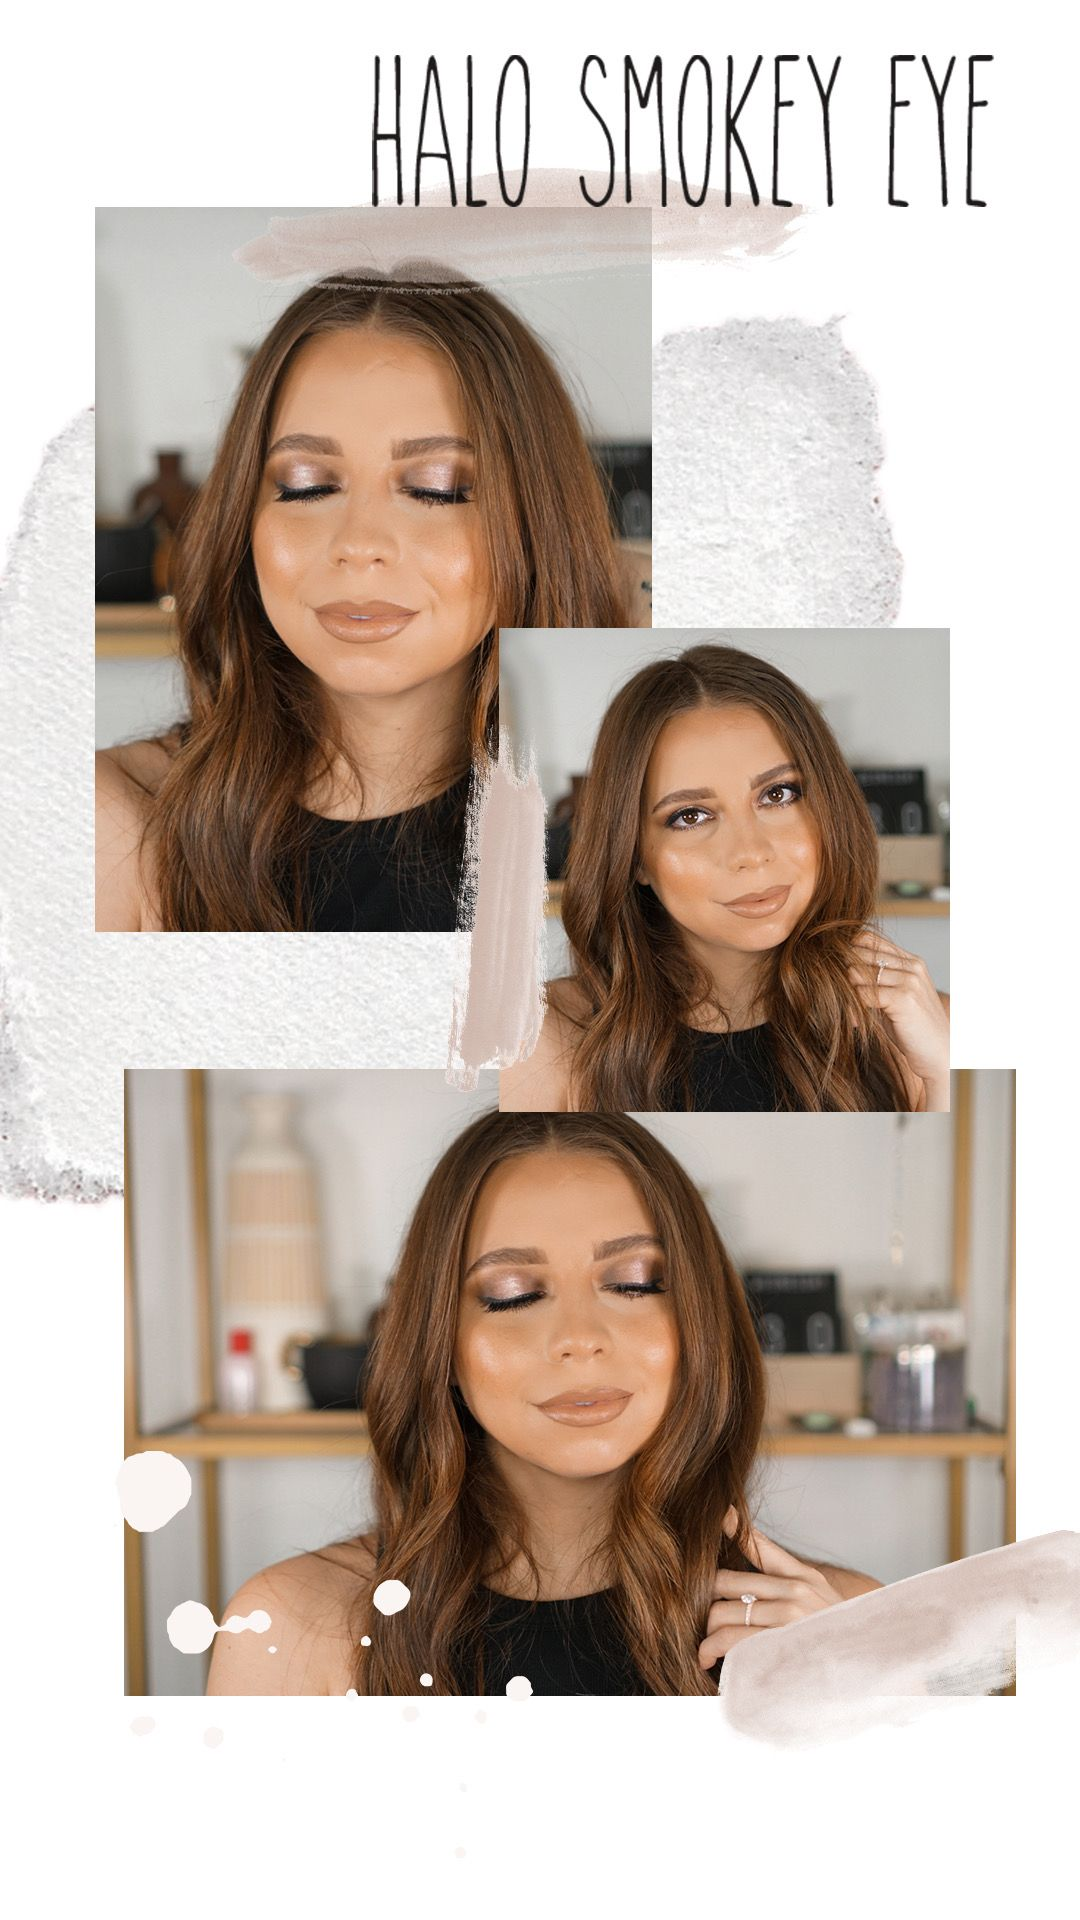 Neutral Smokey Eye perfect for a night out! And the